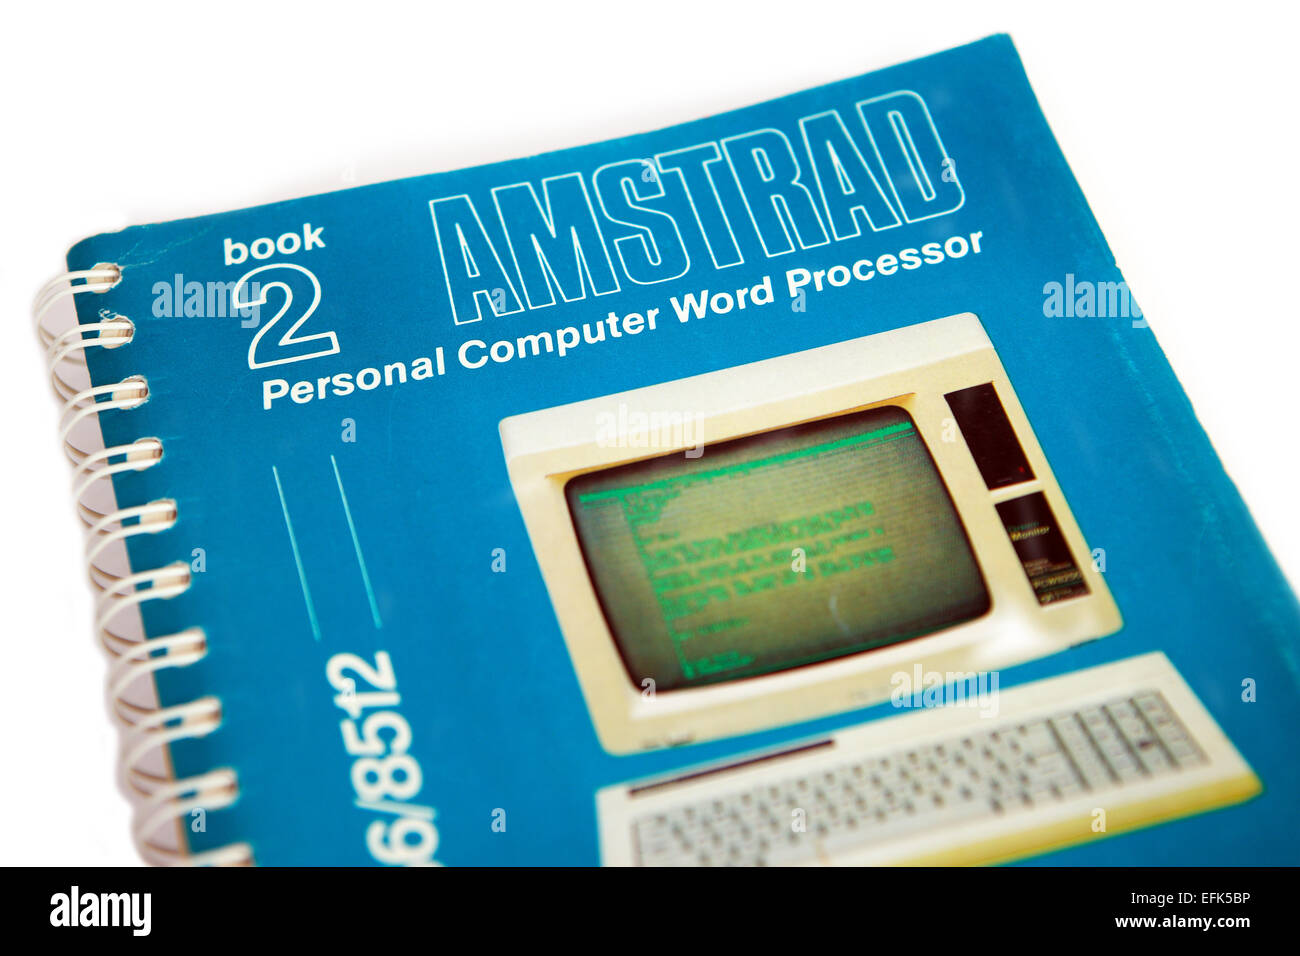 Amstrad personal computer Word Processing book - Stock Image